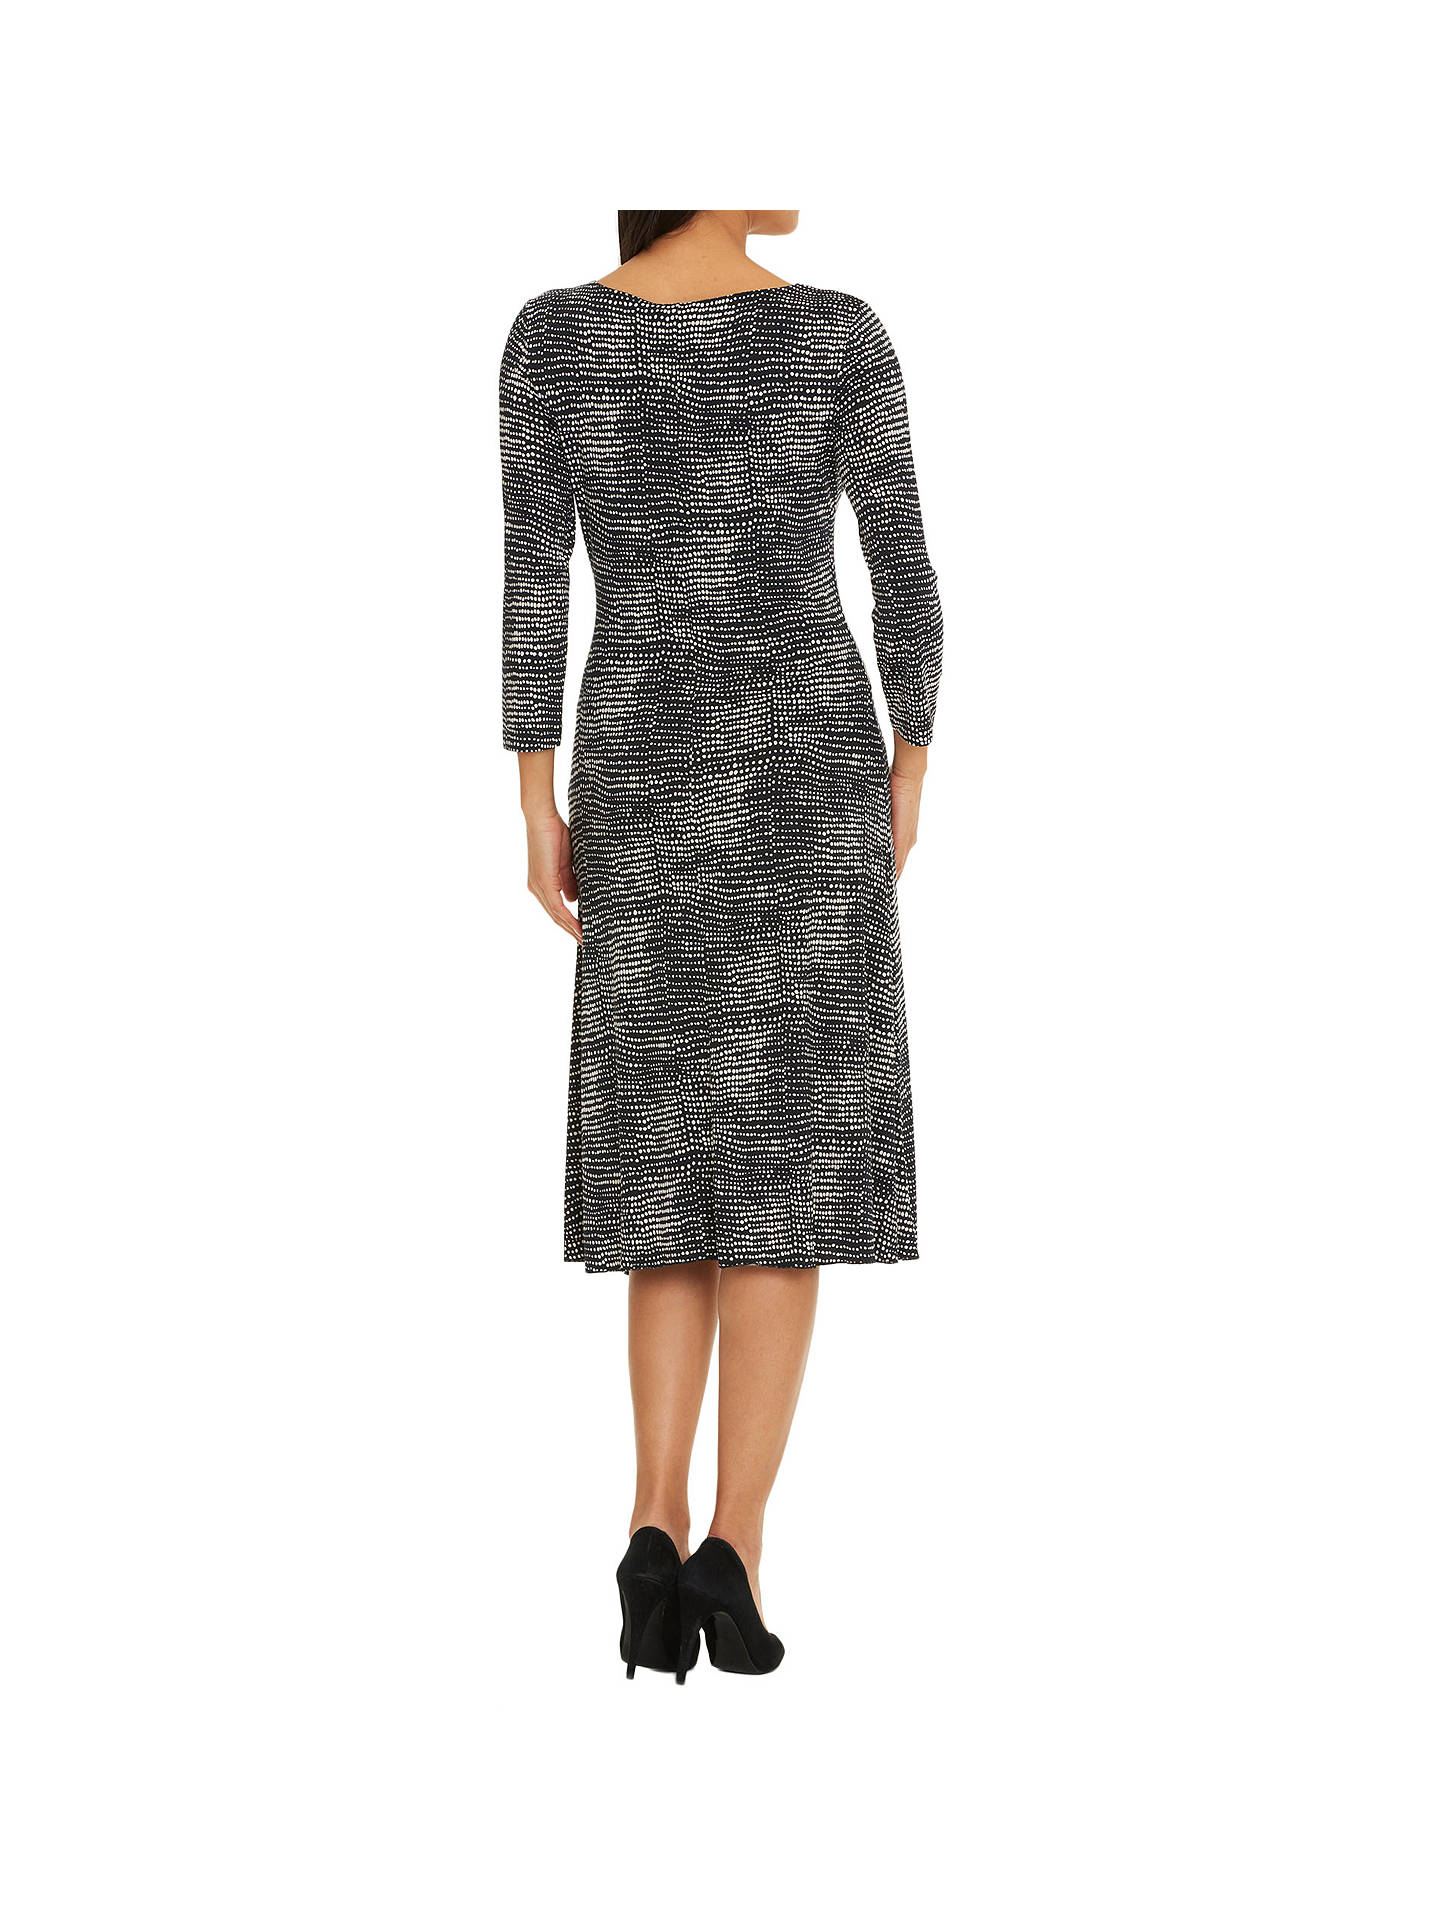 BuyBetty Barclay Polka Dot Print Dress, Black/White, 8 Online at johnlewis.com